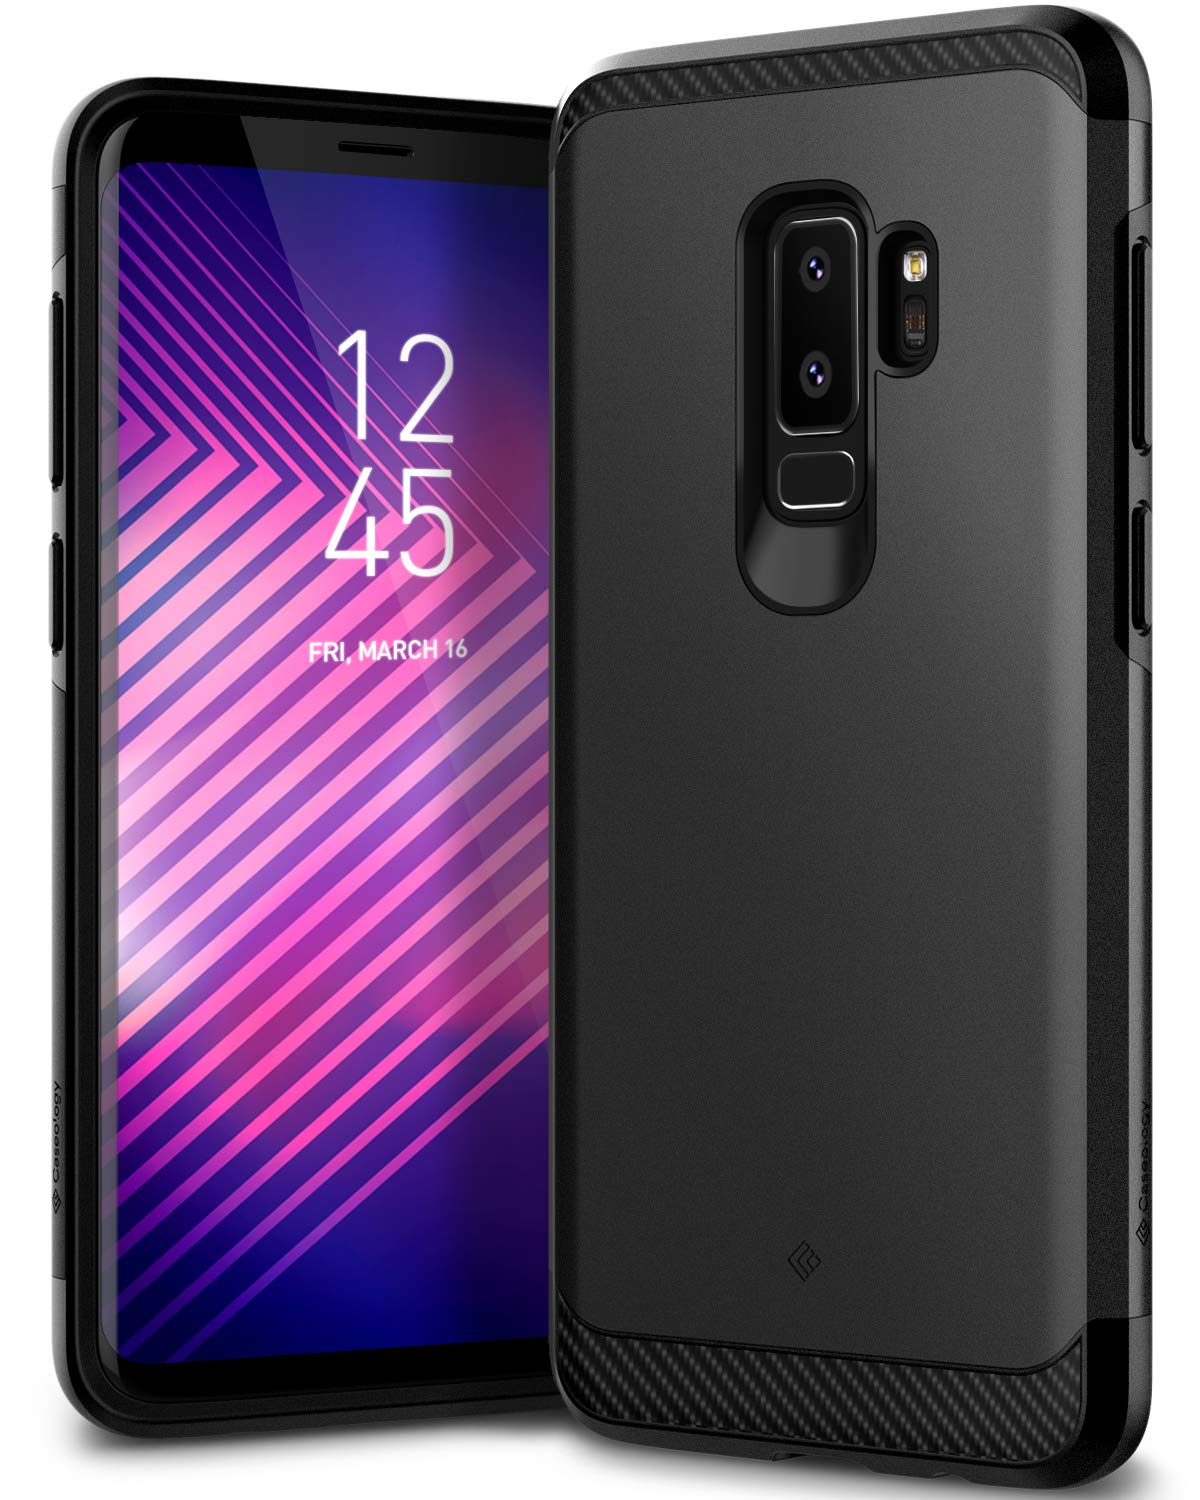 sale retailer d7327 6f846 Caseology Legion for Galaxy S9 Plus Case (2018) - Reinforced Protection -  Black